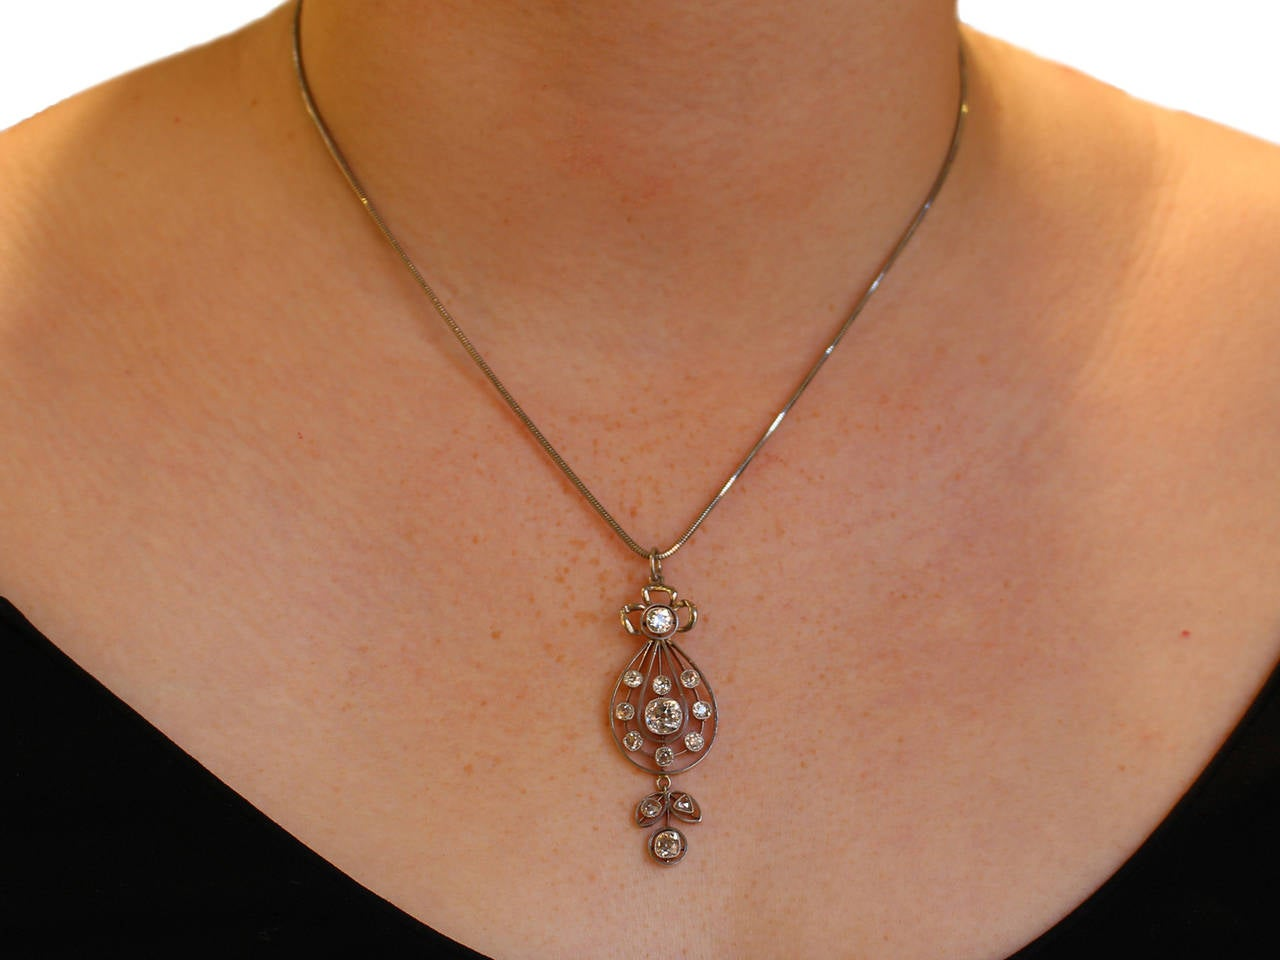 1880s Antique Victorian 2.14 Carat Diamond and 15k Yellow Gold Pendant  For Sale 4